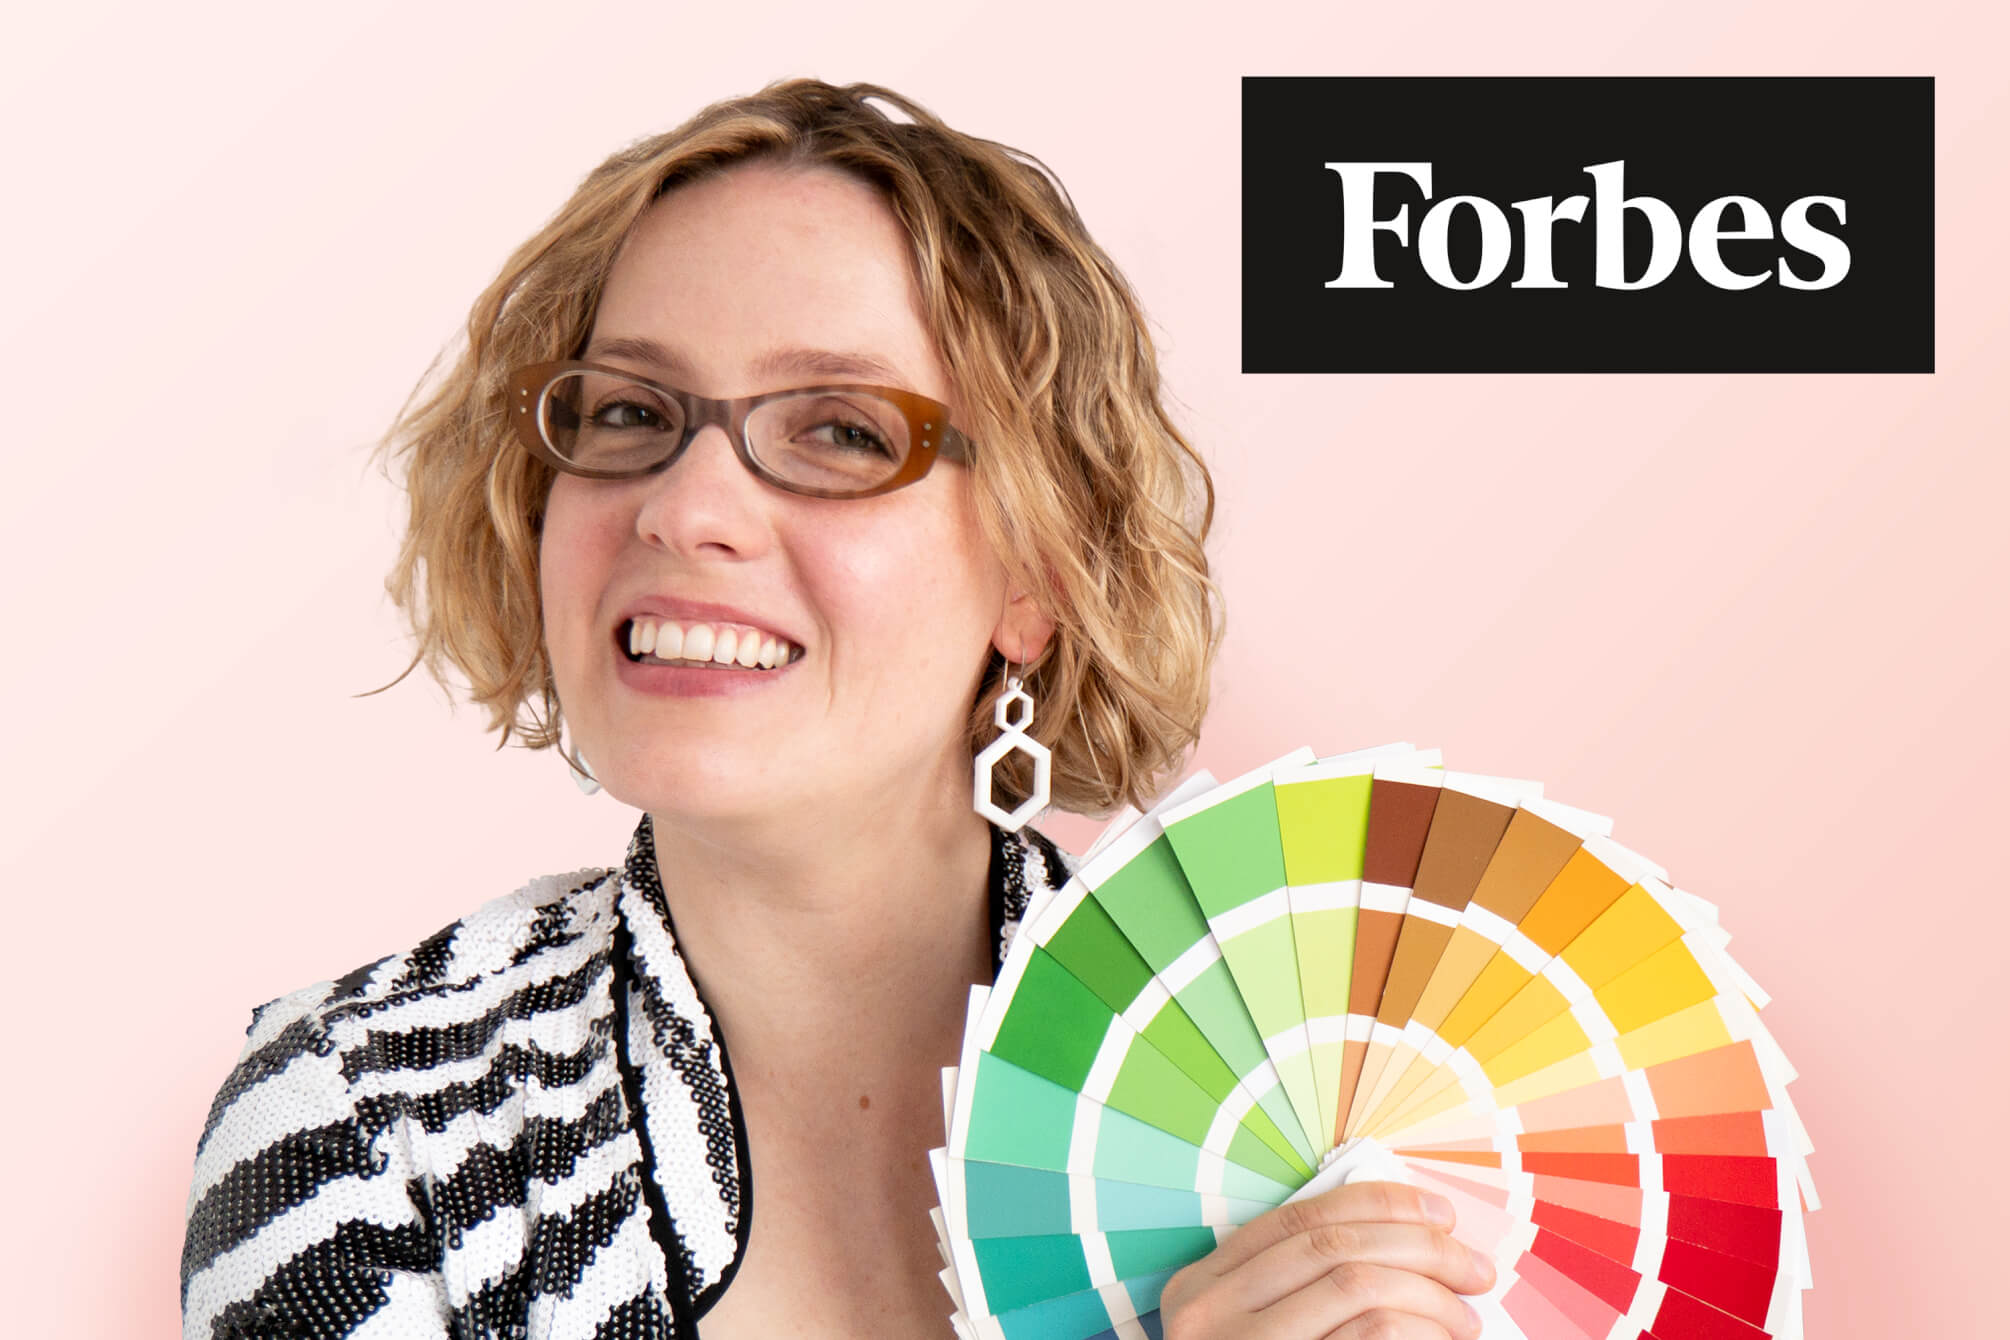 Alexandria Lawrence holding cheery spring colour fan, as featured on Forbes.